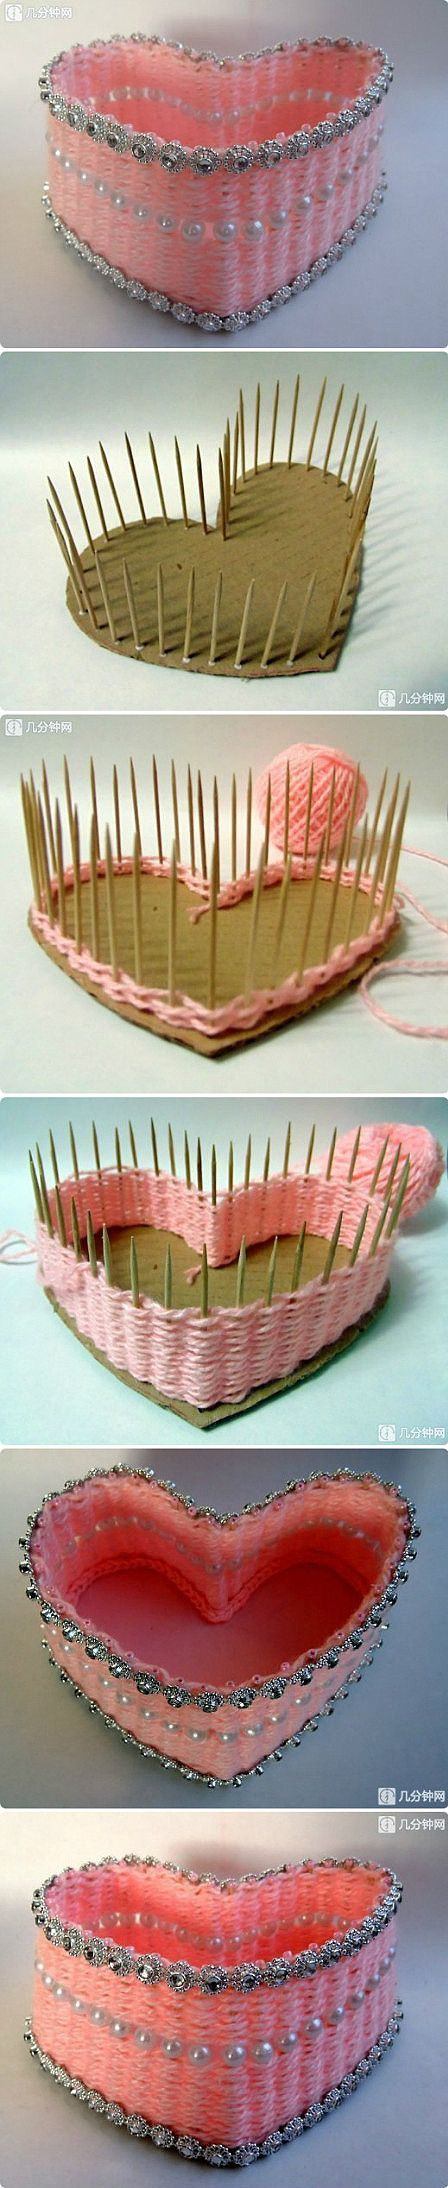 heart storage box~                                                                                                                                                      Más